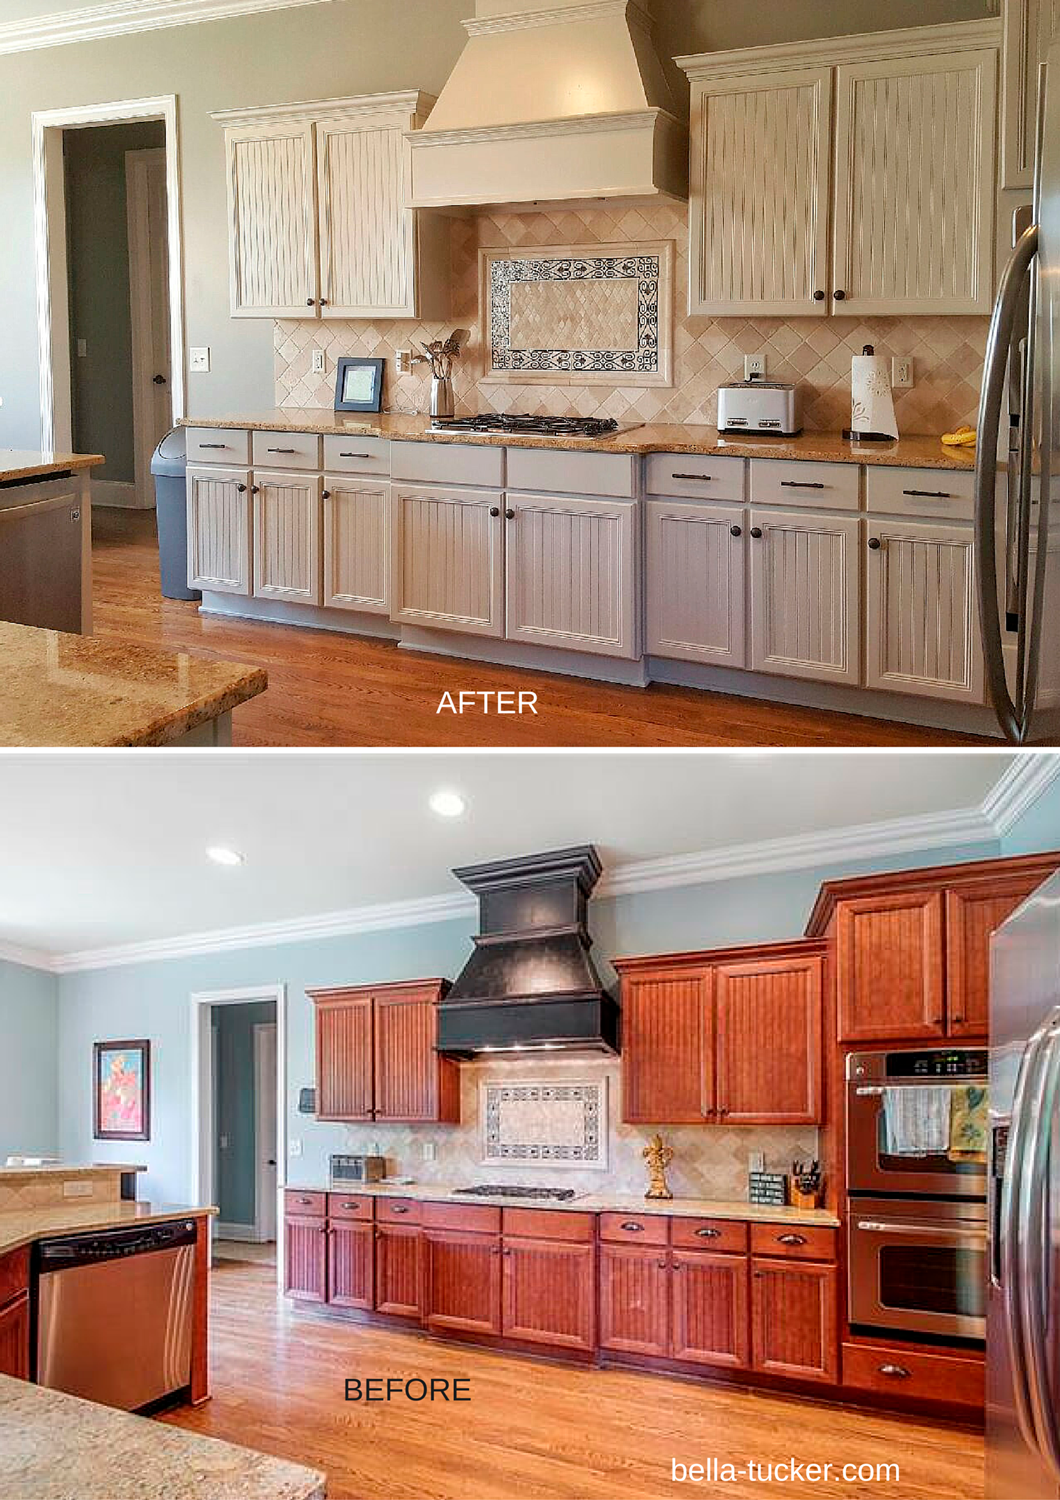 Painted cabinets nashville tn before and after photos for Painting wood cabinets white before and after